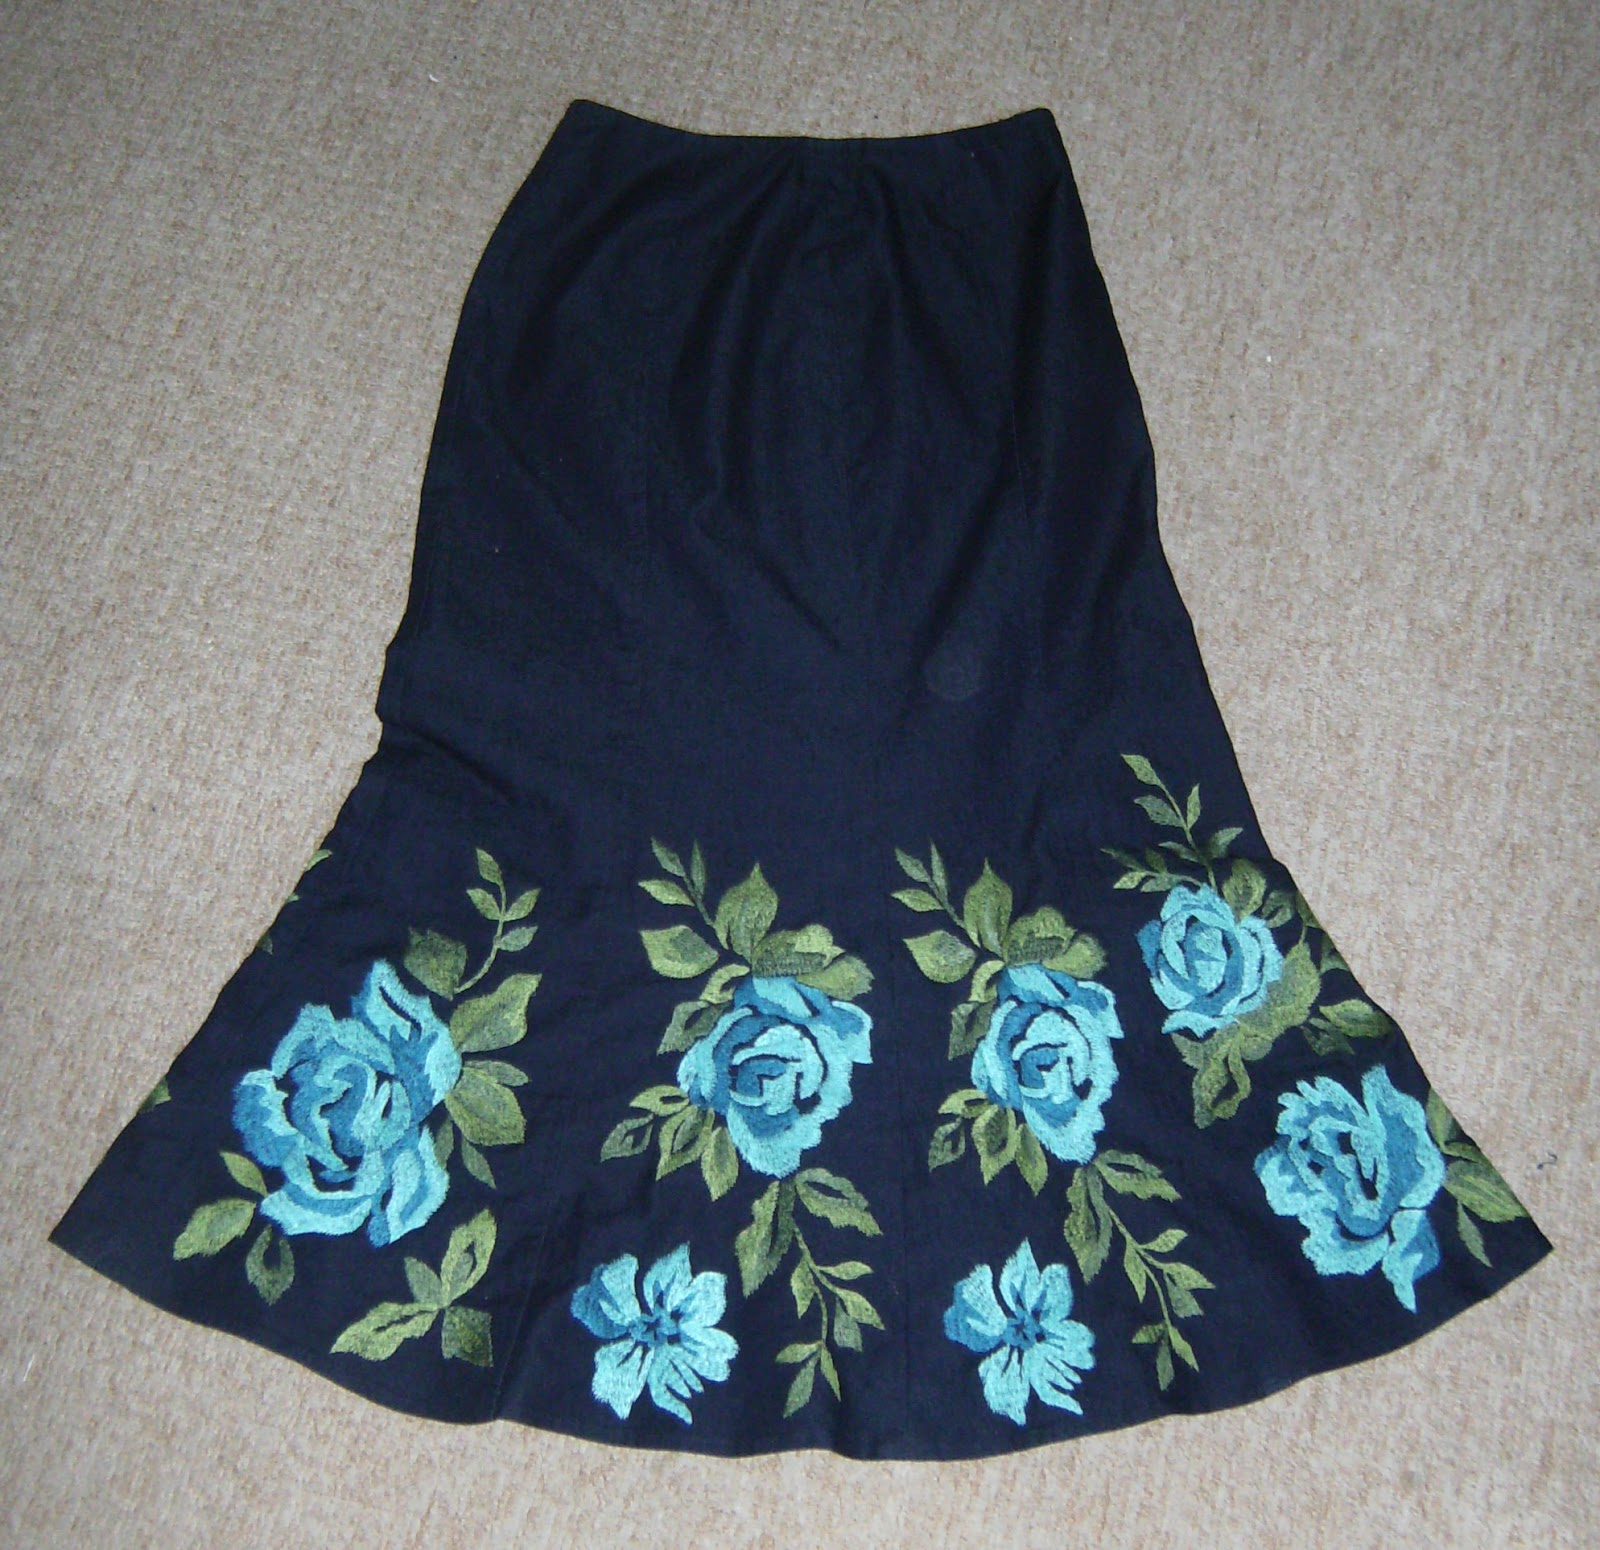 sew selena embroidered denim bag or is it a skirt